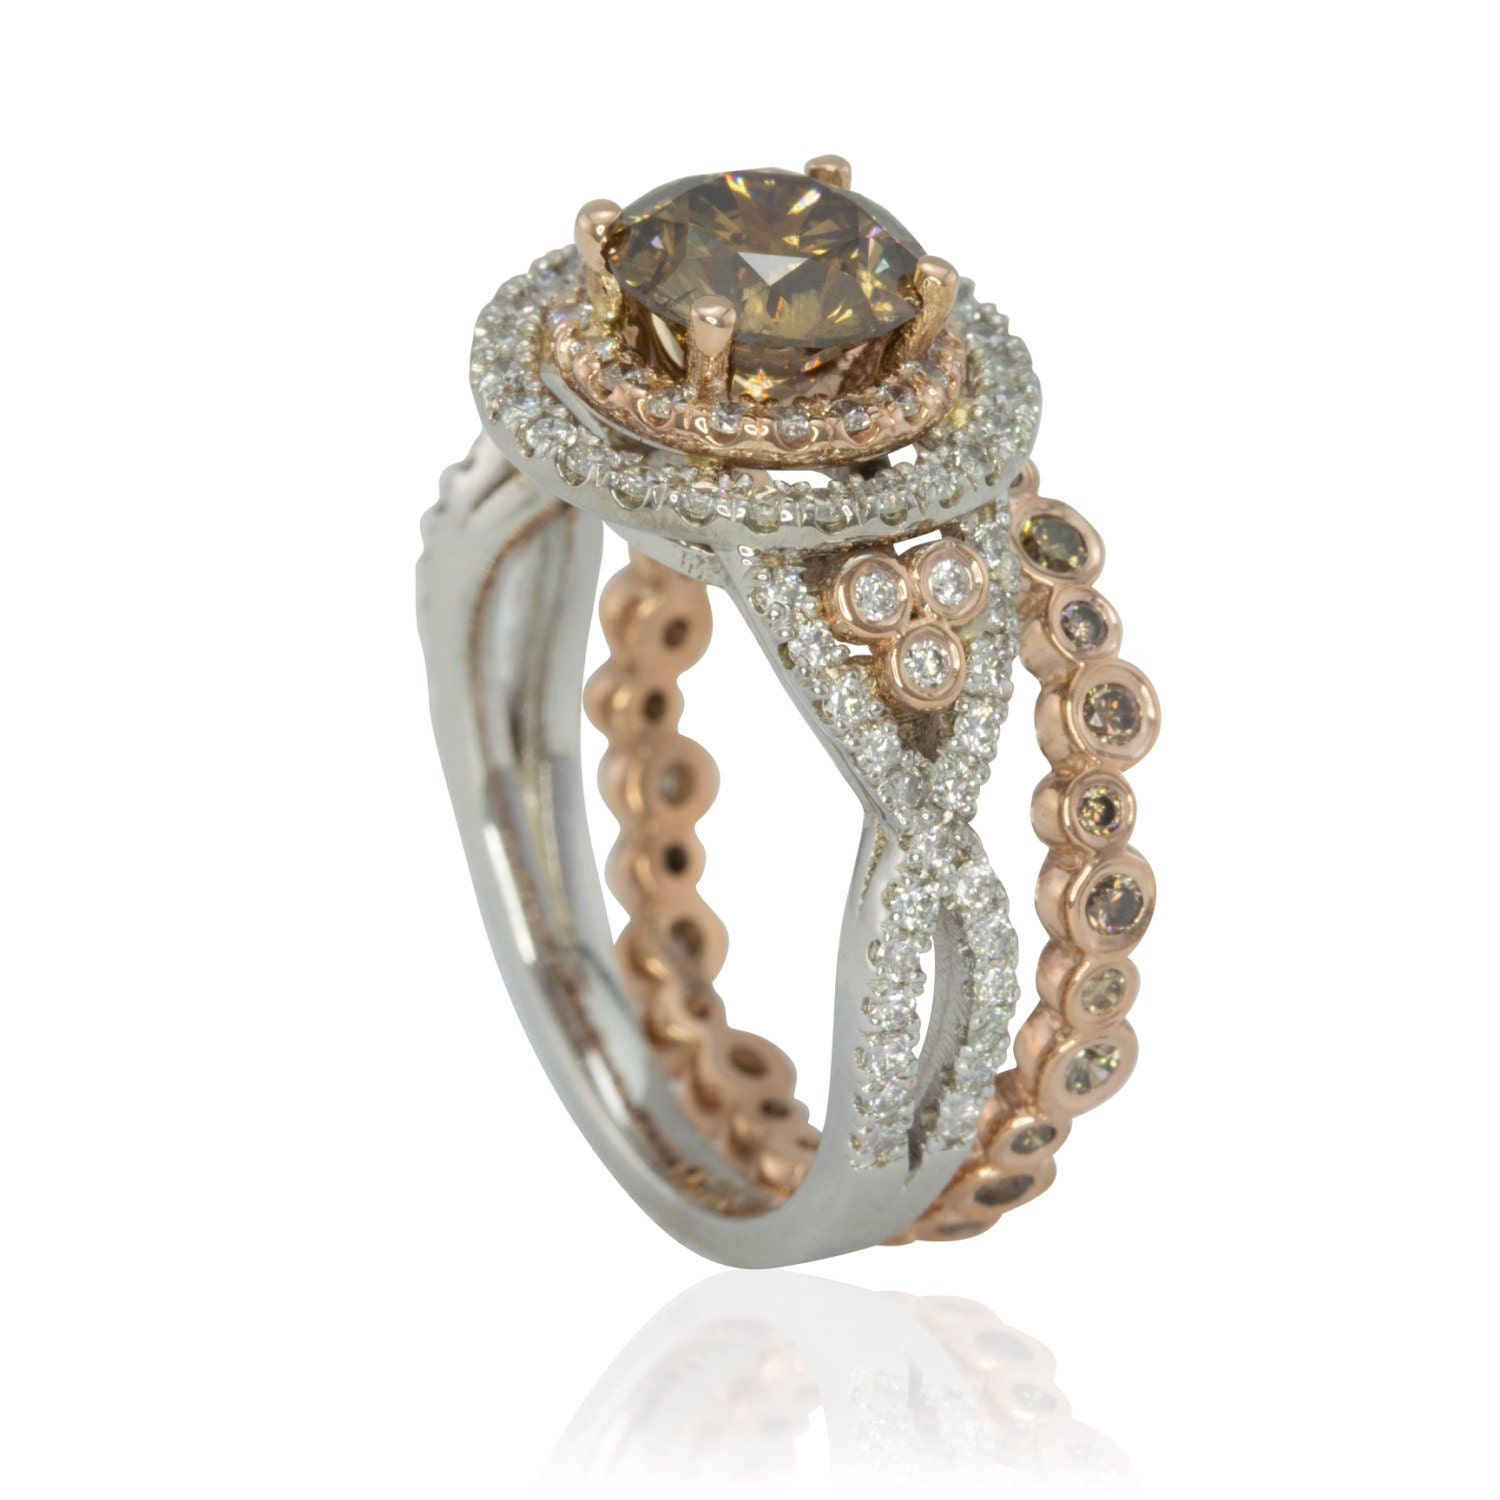 Rose gold engagement ring mocha colored brown diamond wedding for Colored diamond wedding ring